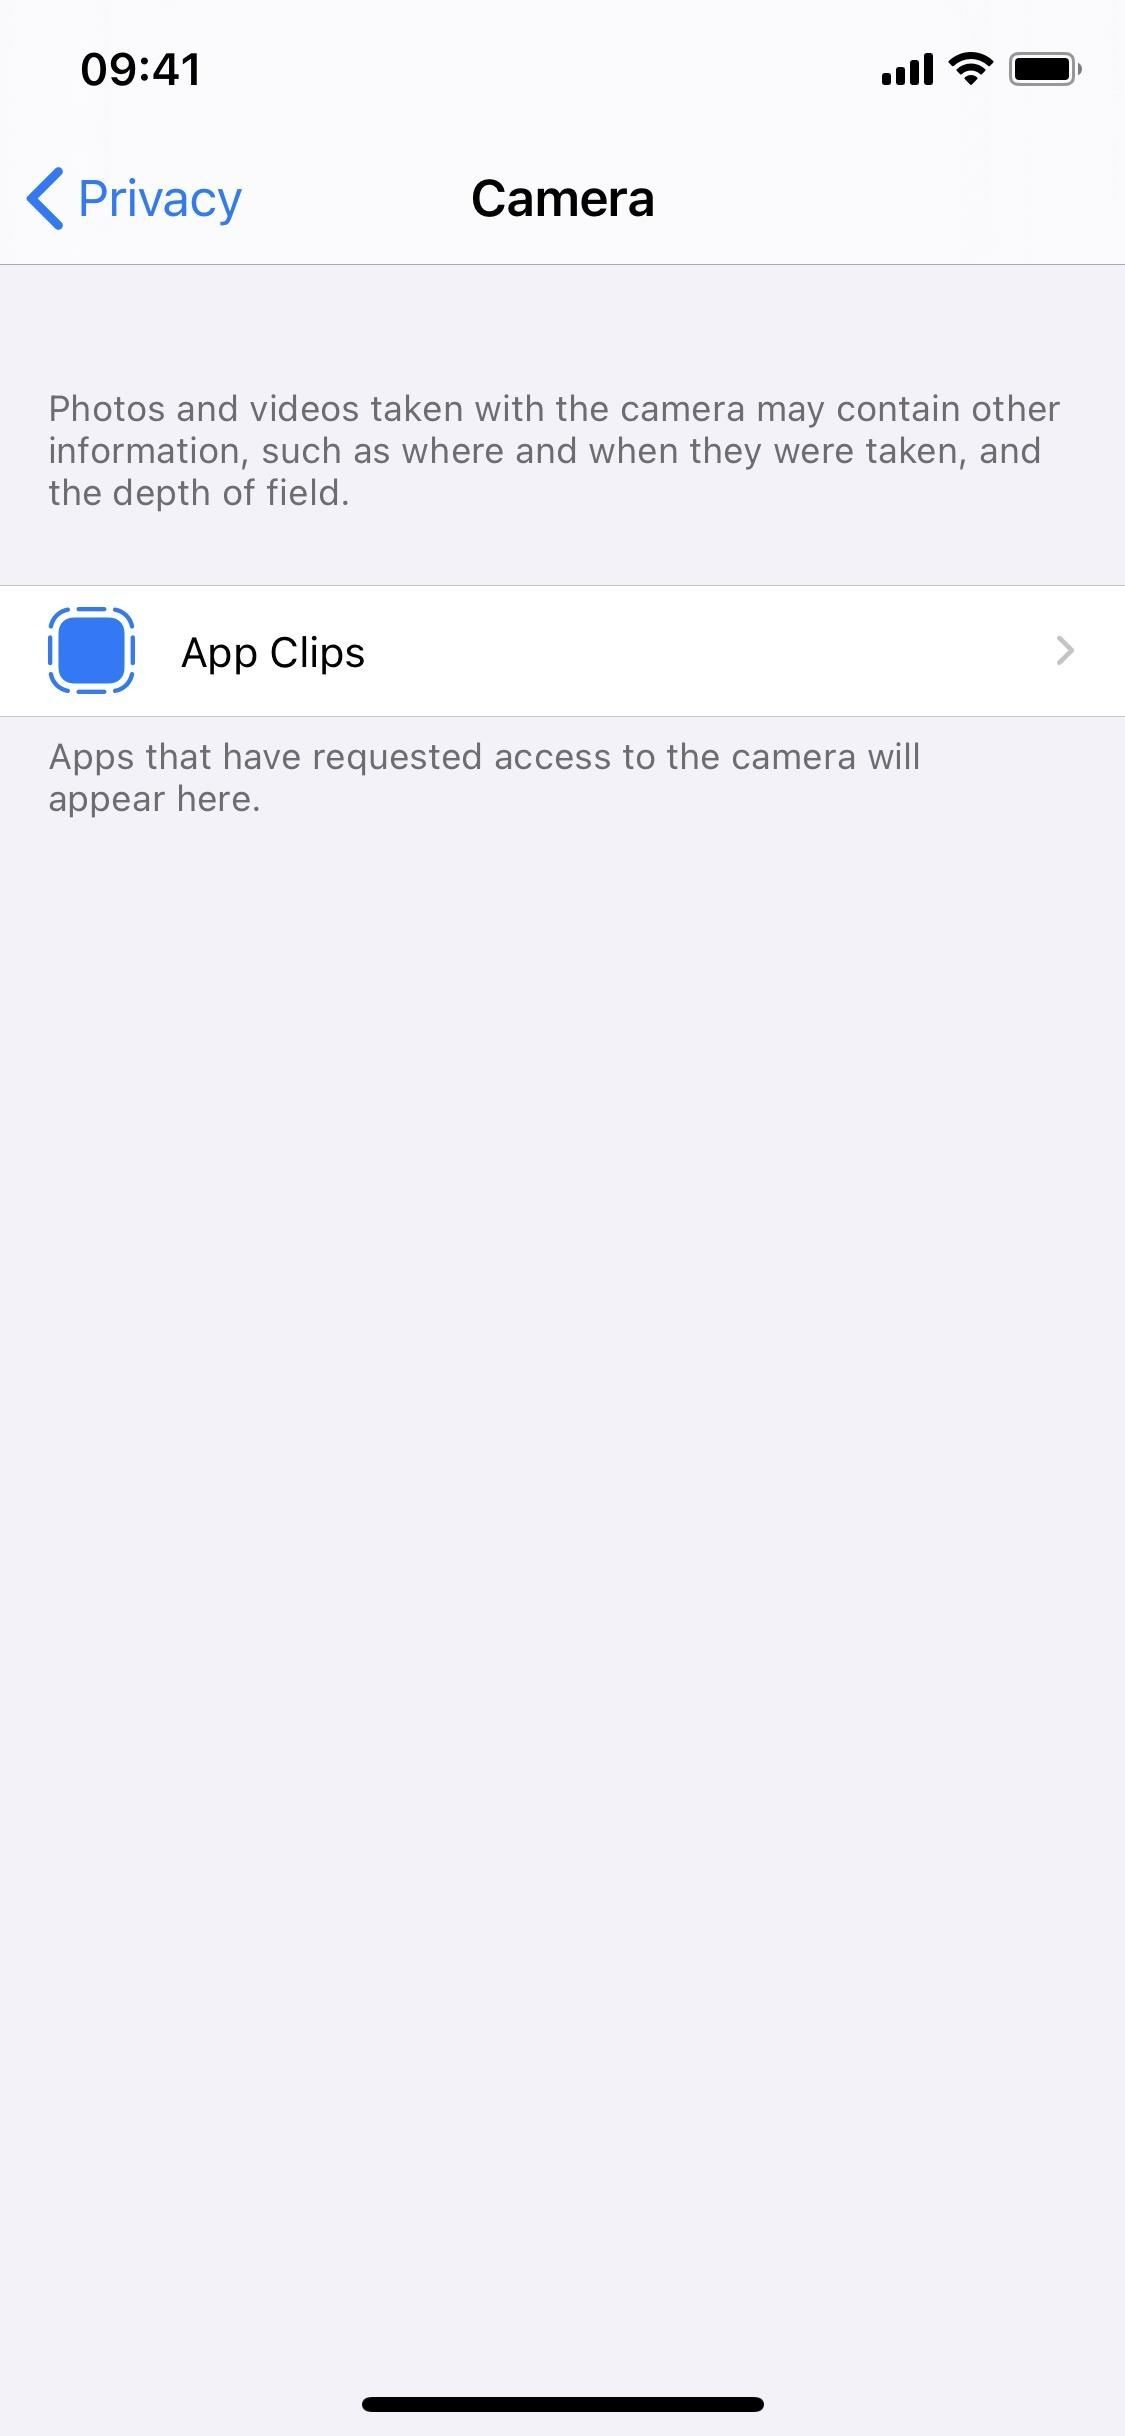 Disable Location Access to All Your iPhone Apps So You Can Be Wiser About Permissions Going Forward